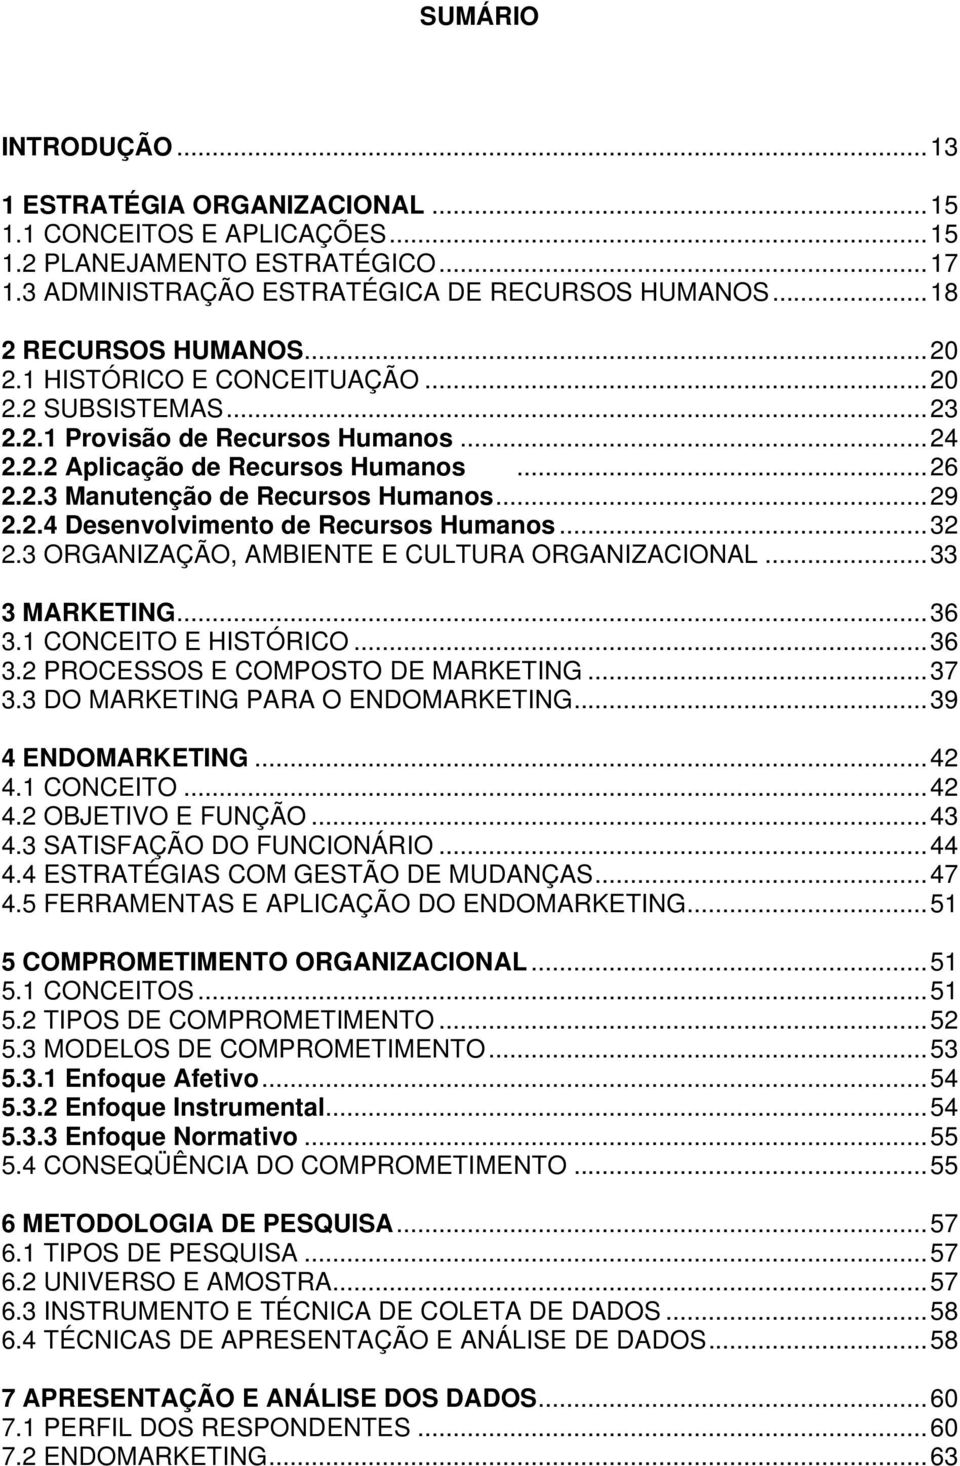 ..32 2.3 ORGANIZAÇÃO, AMBIENTE E CULTURA ORGANIZACIONAL...33 3 MARKETING...36 3.1 CONCEITO E HISTÓRICO...36 3.2 PROCESSOS E COMPOSTO DE MARKETING...37 3.3 DO MARKETING PARA O ENDOMARKETING.